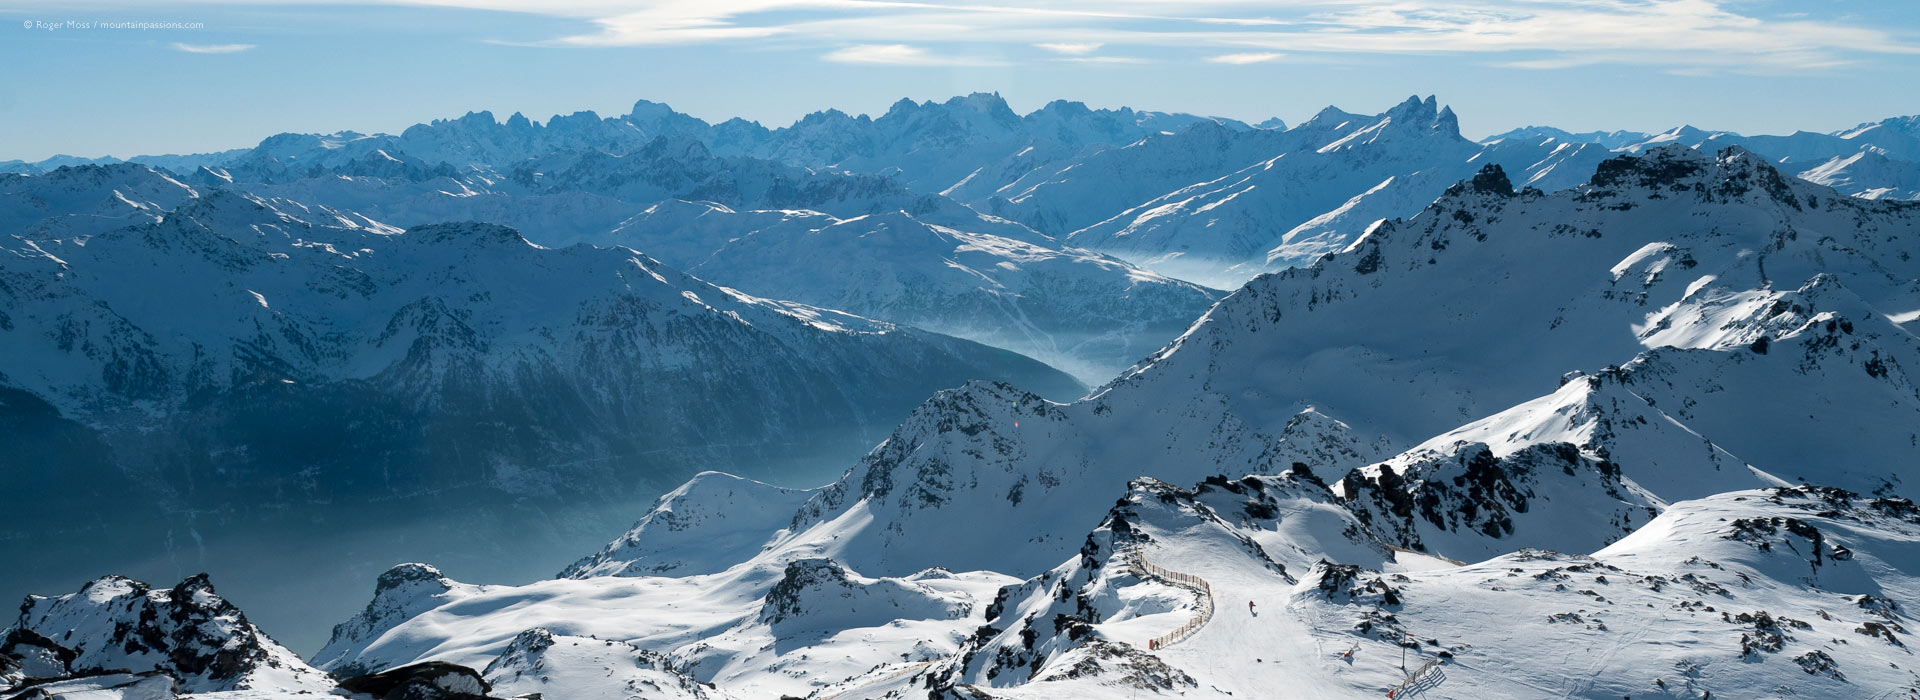 Vast mountain landscape with distant skier descending from Val Thorens to Orelle.